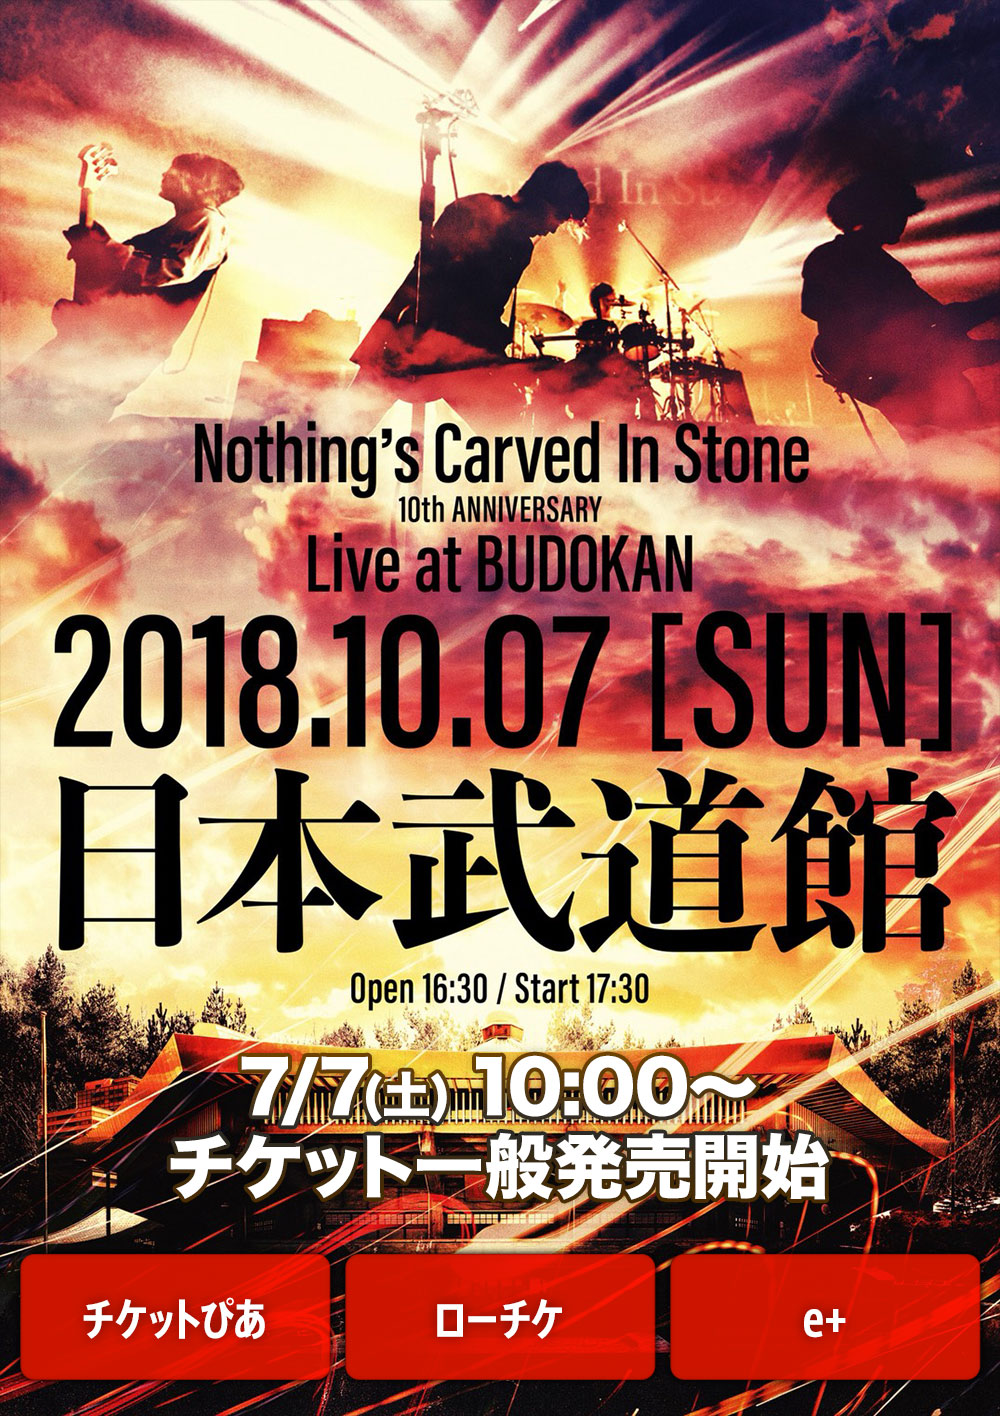 2018.10.07 Nothing's Carved In Stone 10th Anniversary Live at BUDOKAN 7/7(土)10:00〜チケット一般発売開始